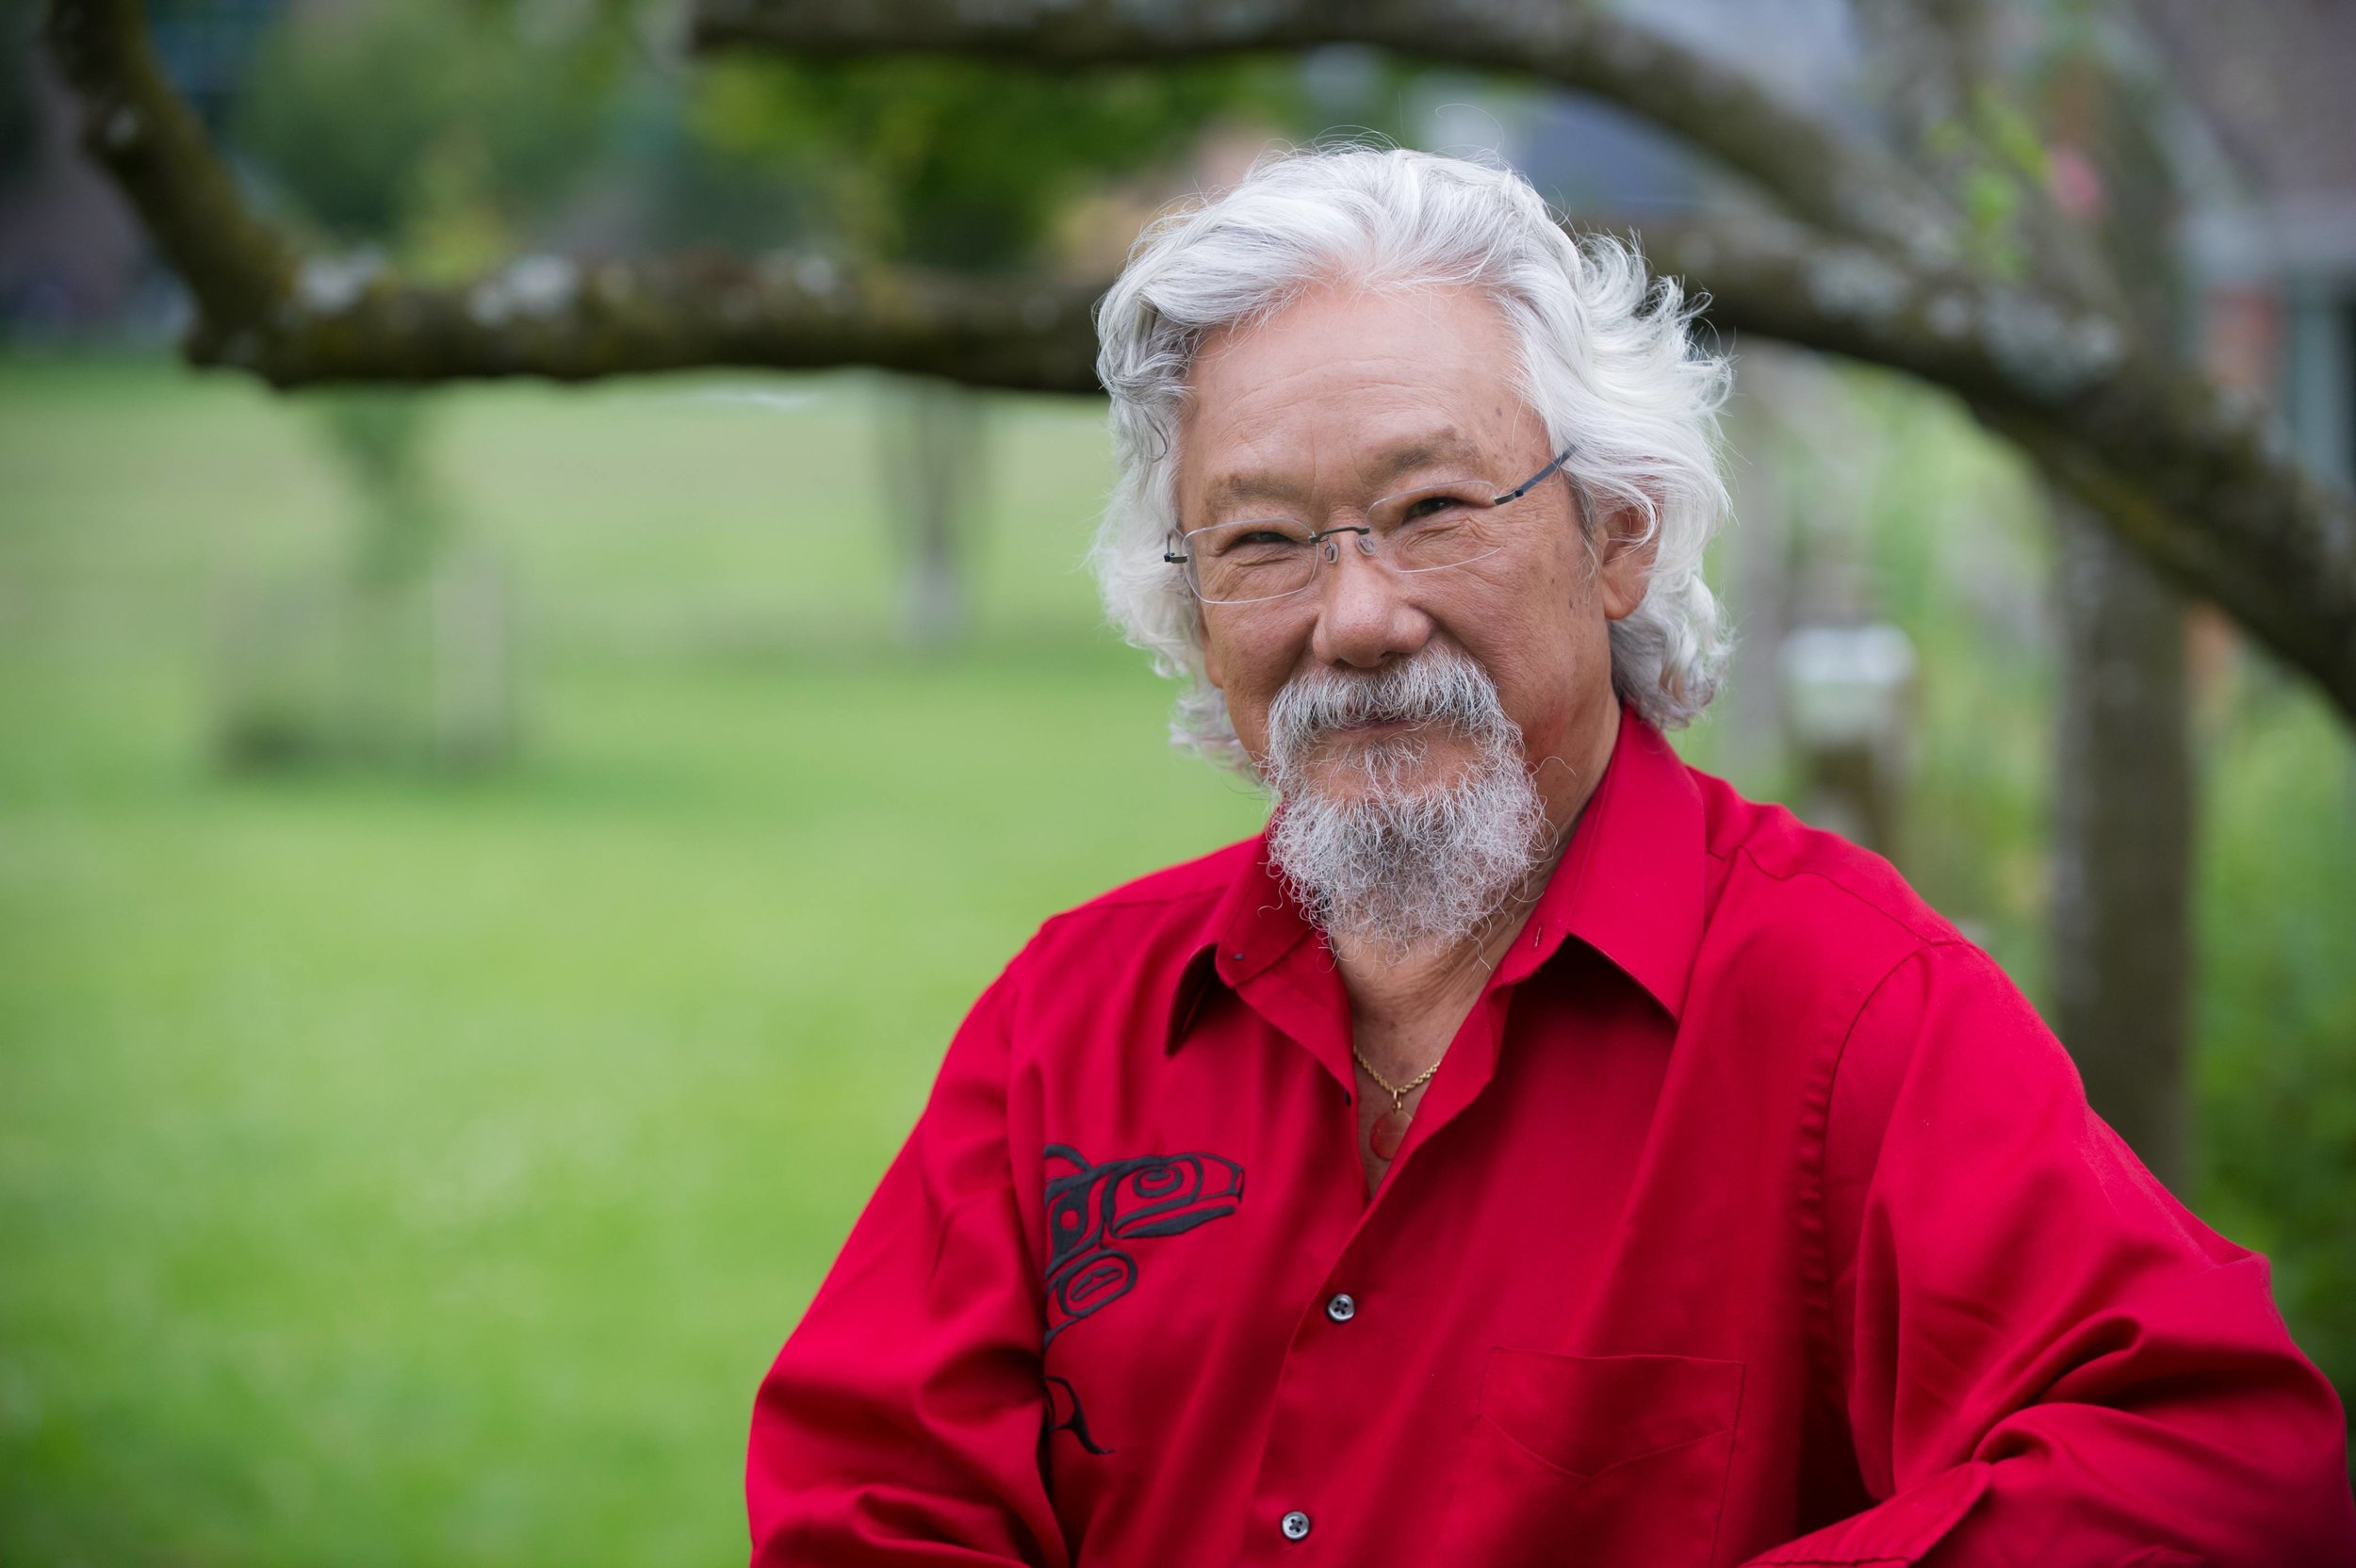 David_Suzuki_outside.jpg